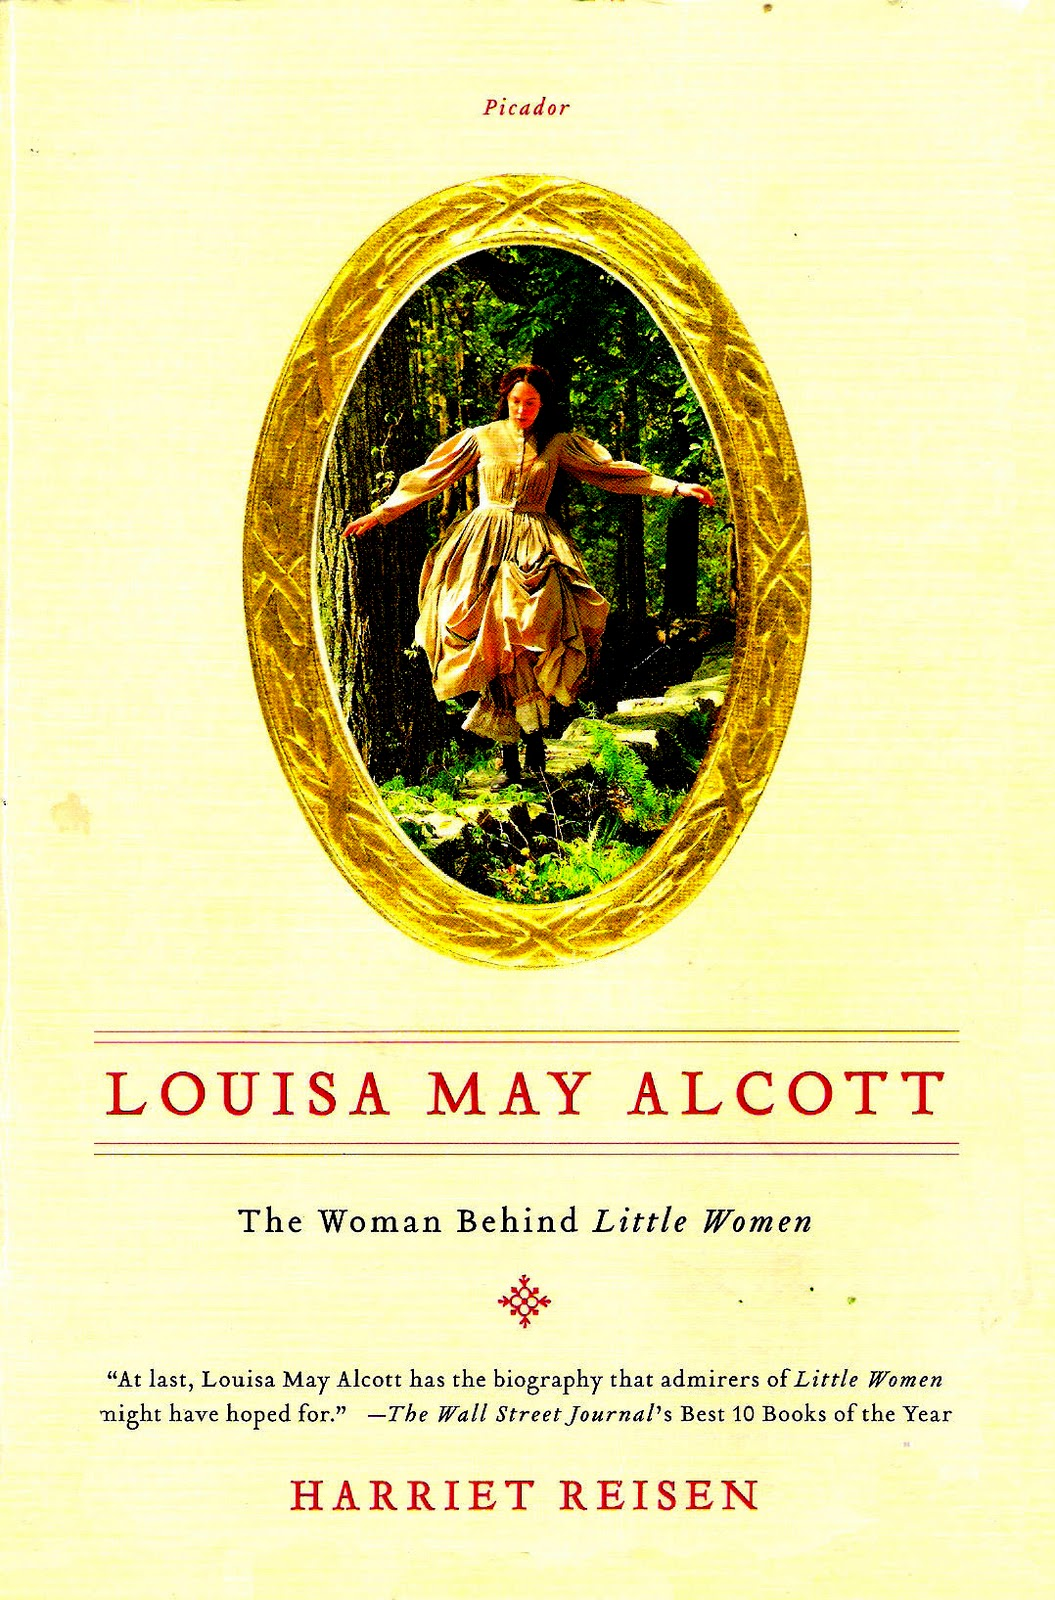 a biography of the life and times of louisa may alcott In a fresh, modern take on the remarkable louisa may alcott, harriet reisen's vivid biography explores the author's life in the context of her works, many of which are to some extent autobiographical.